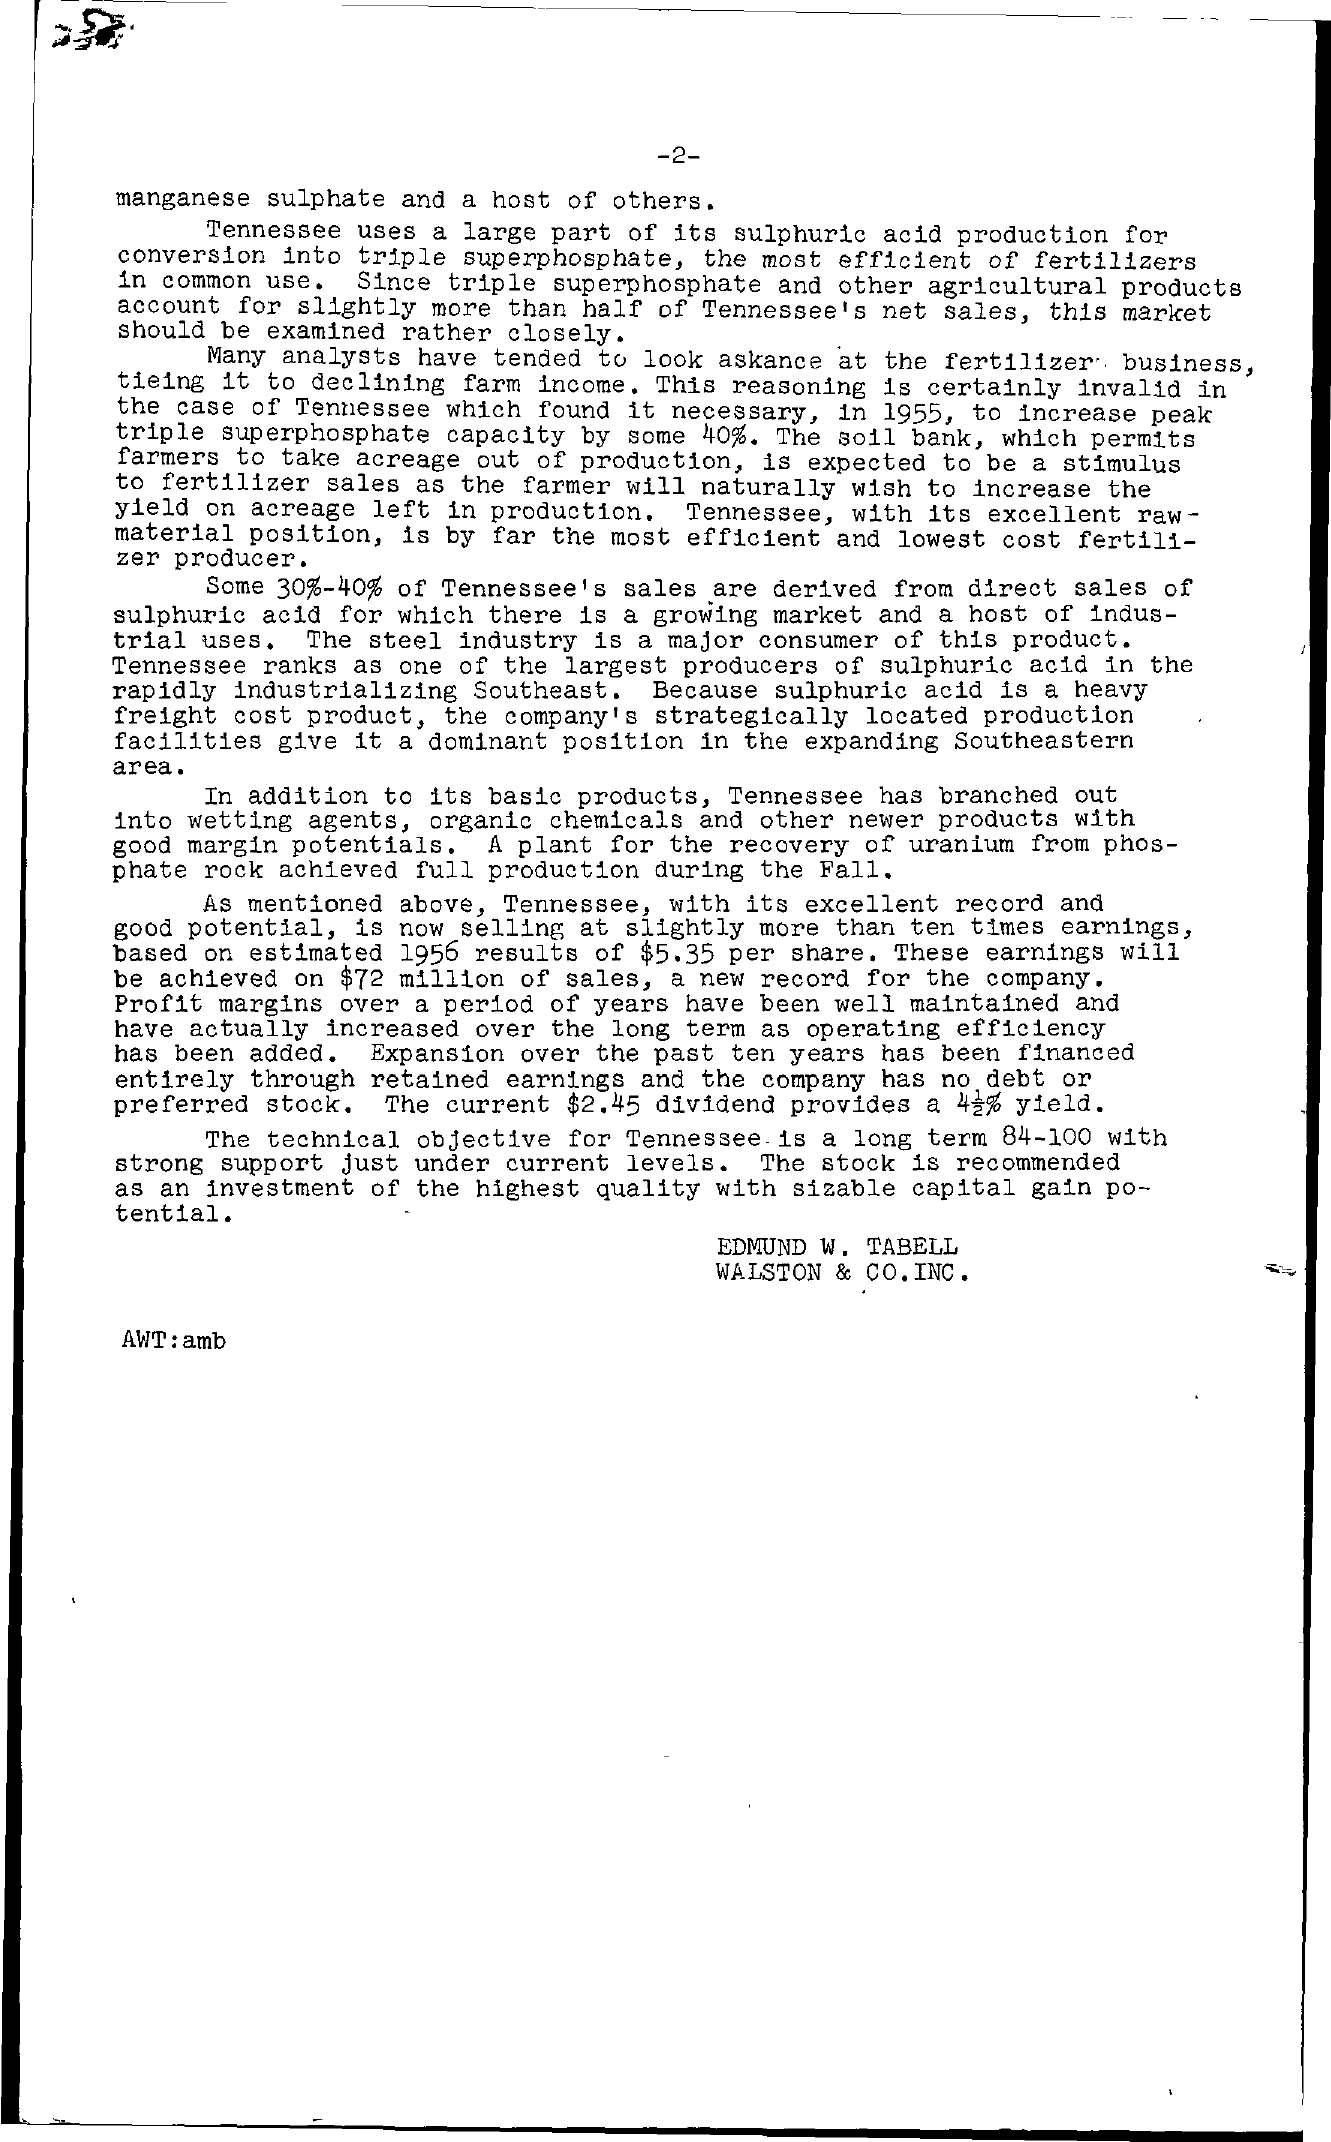 Tabell's Market Letter - December 07, 1956 page 2